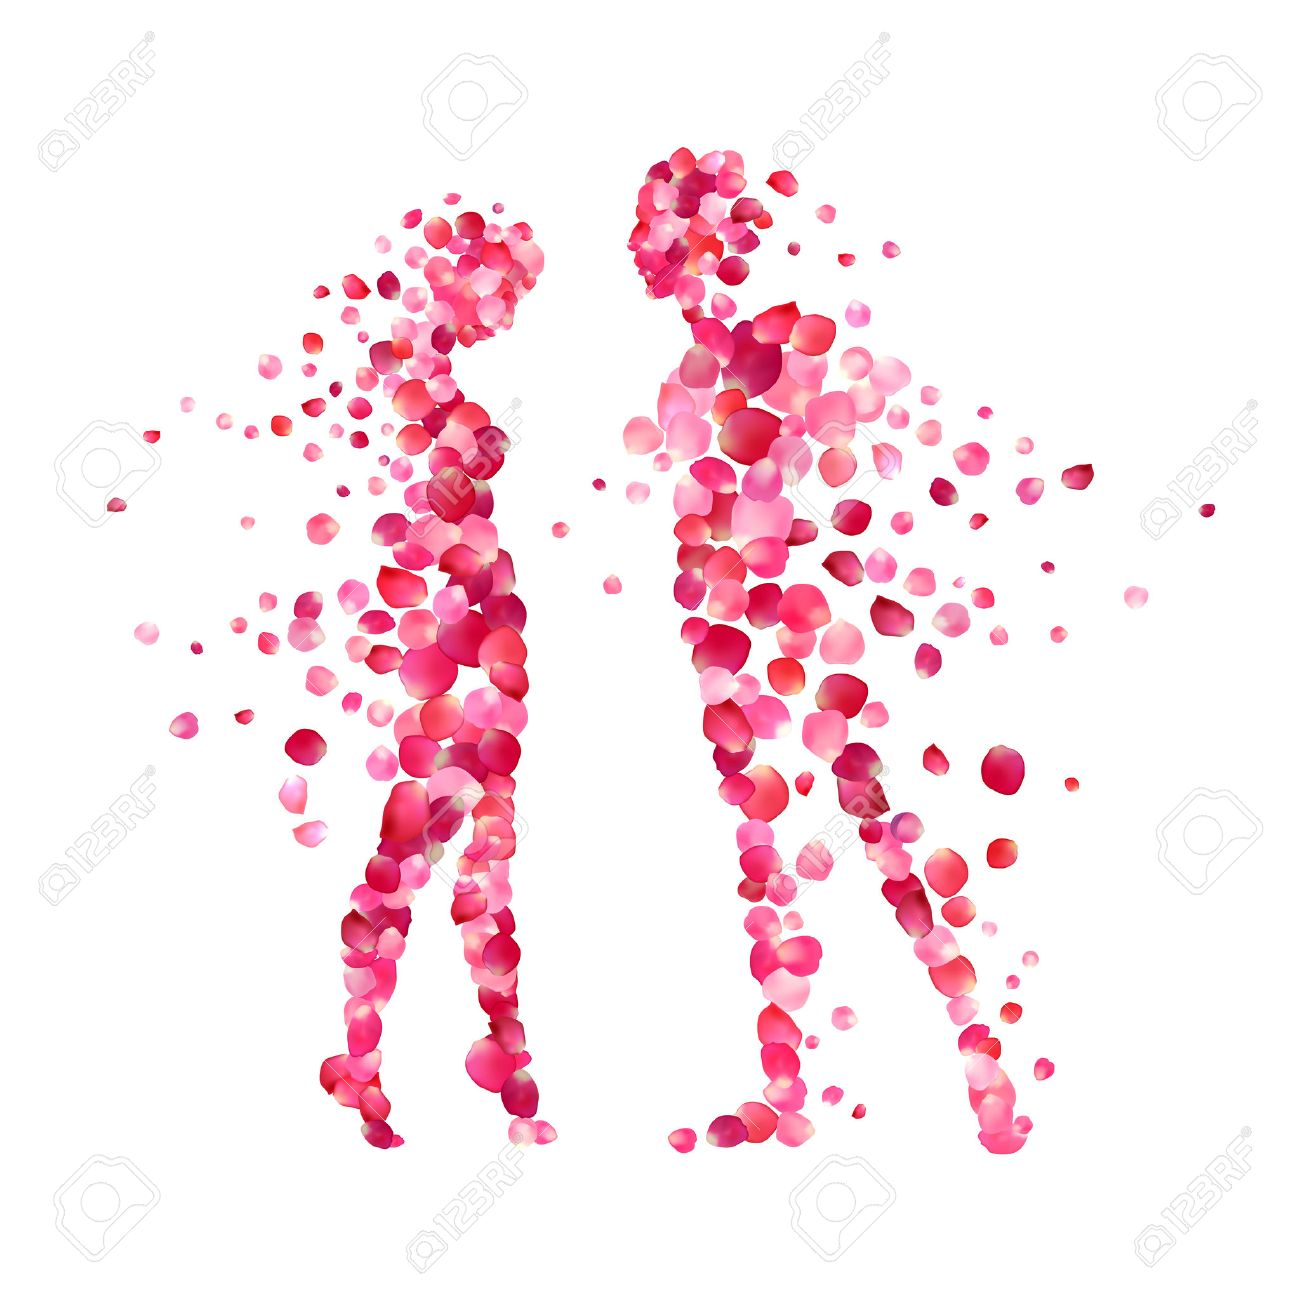 loving couple silhouettes of rose petals. Valentine's Day illustration - 50635259